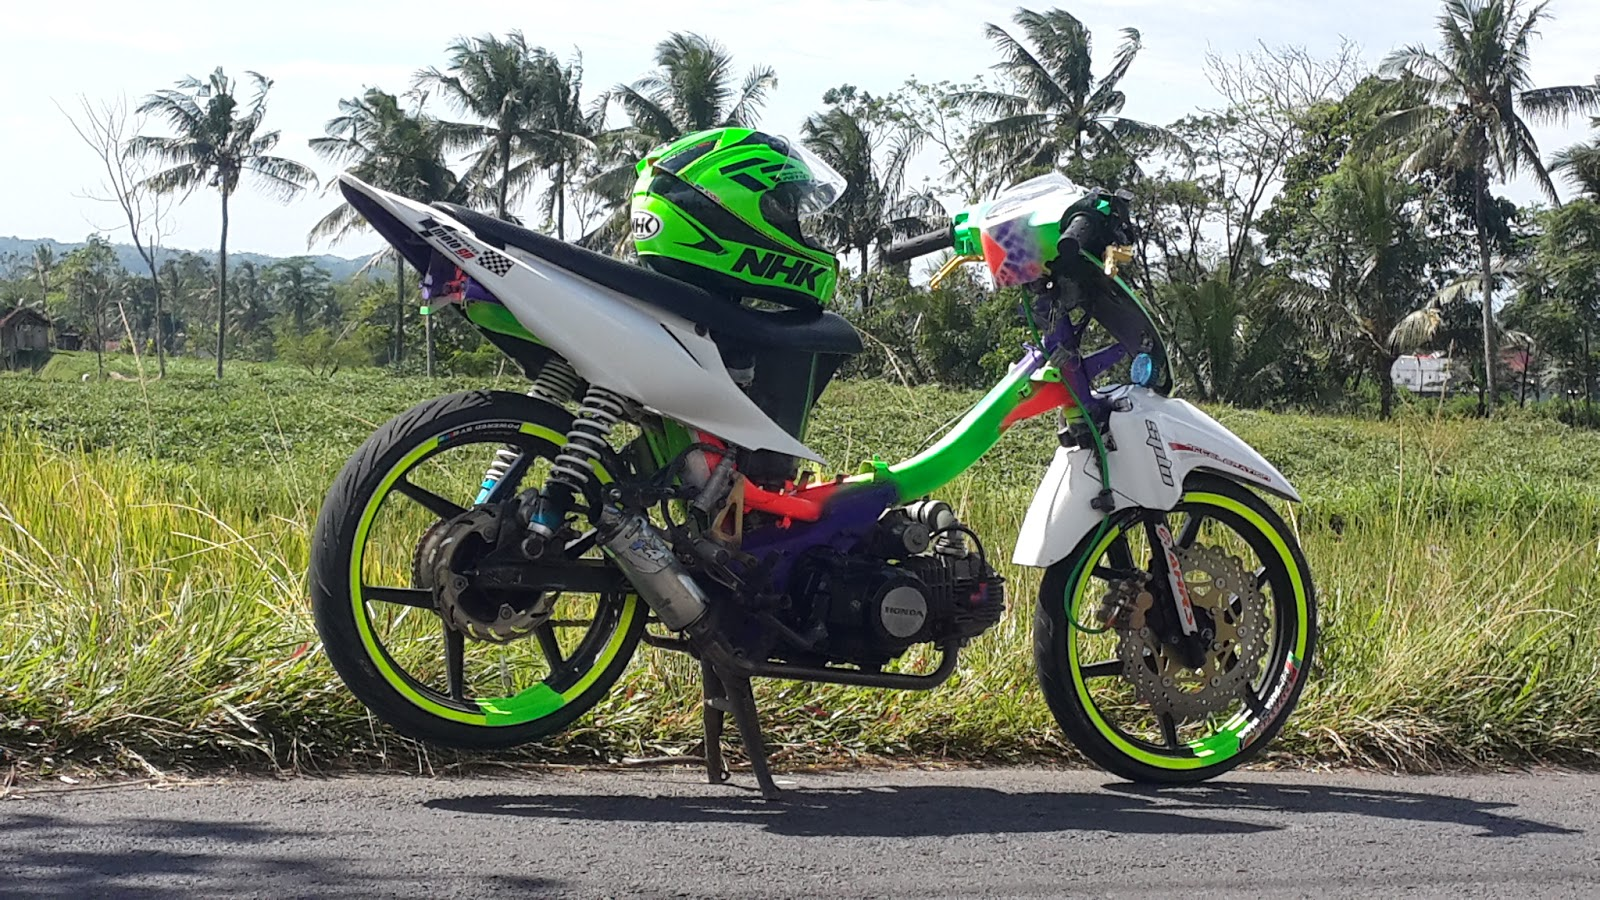 Honda Revo Modifikasi